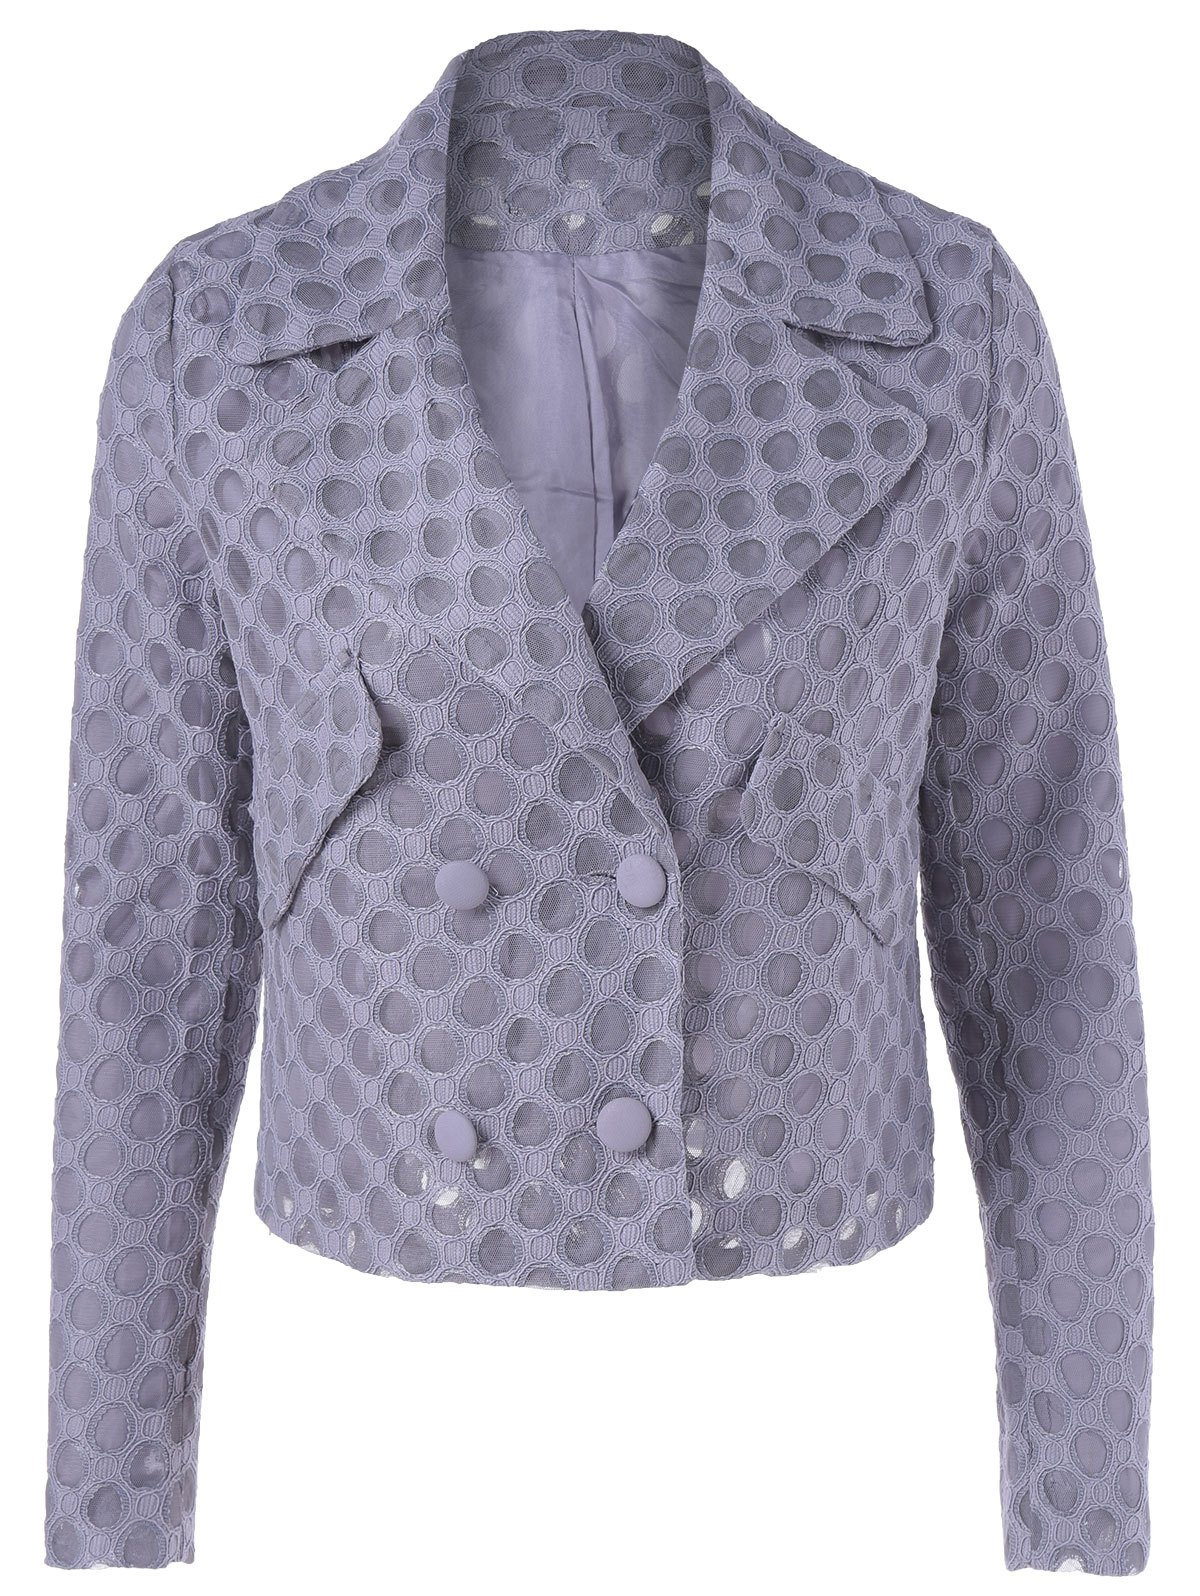 Casual Women's Turn-down Collar Button Mesh Long Sleeves Jacket - SMOKY GRAY L